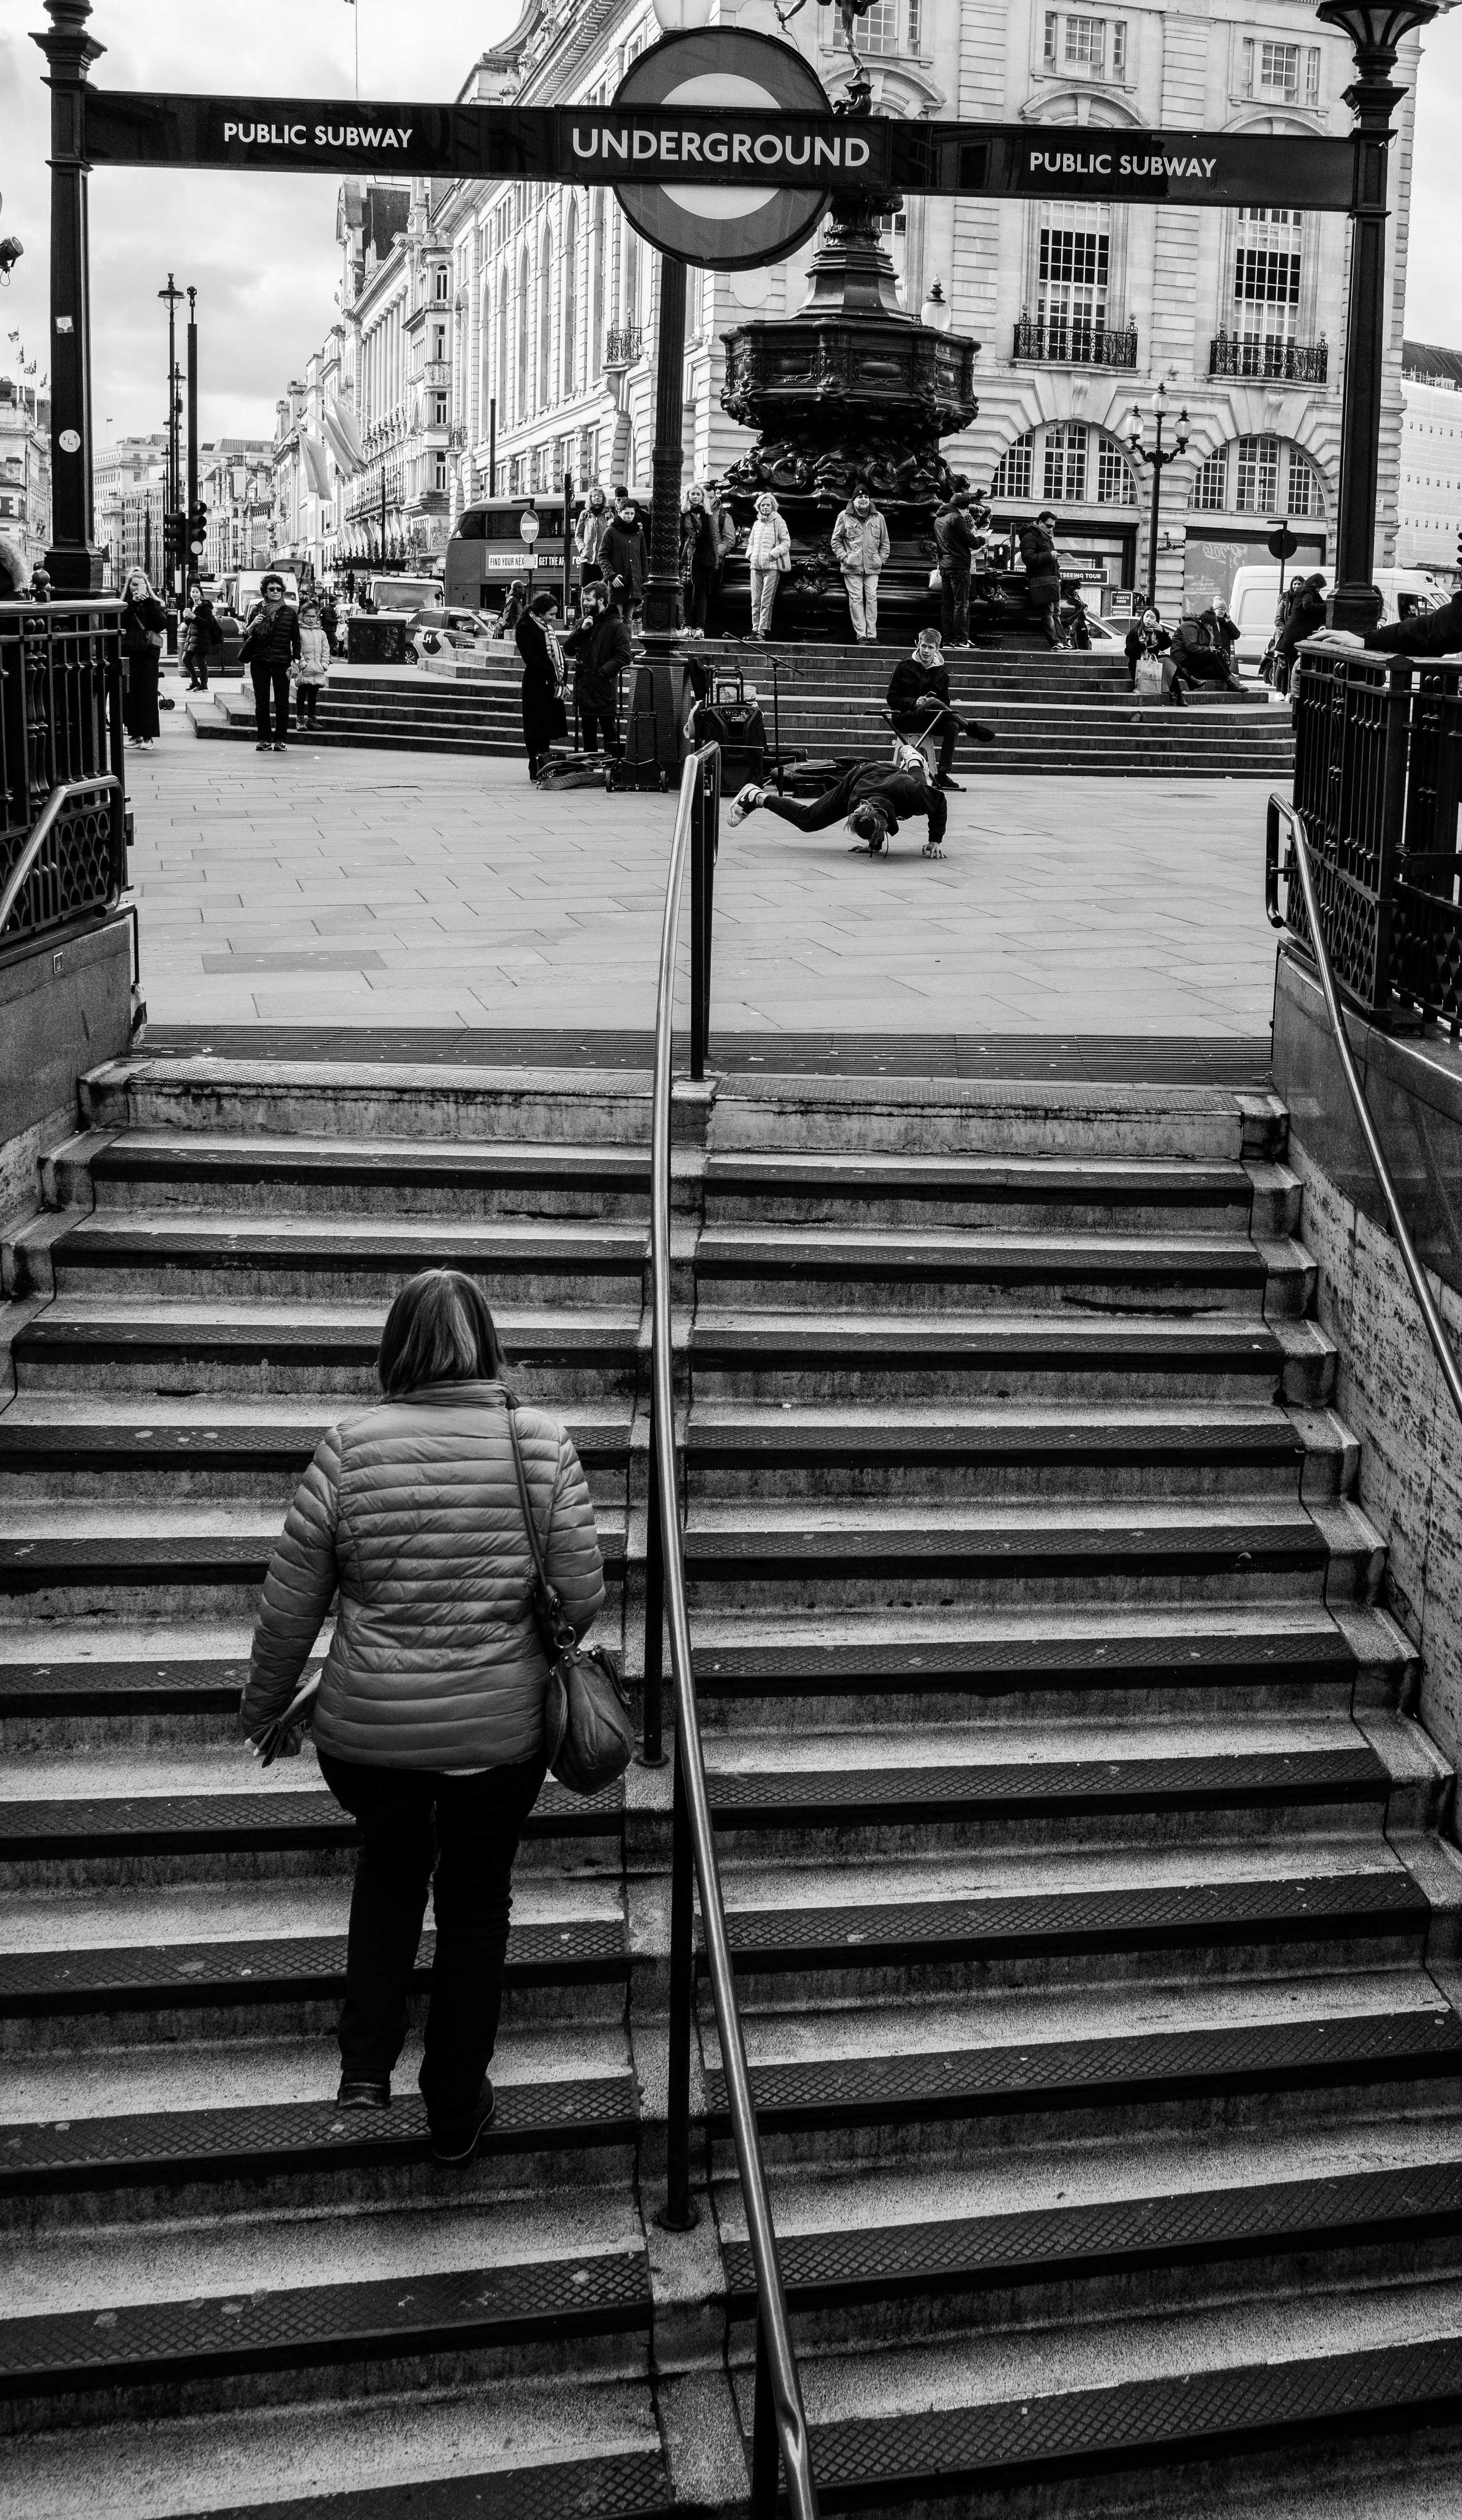 Lady walking up tube station stairs while man breakdances in black and white street photo.